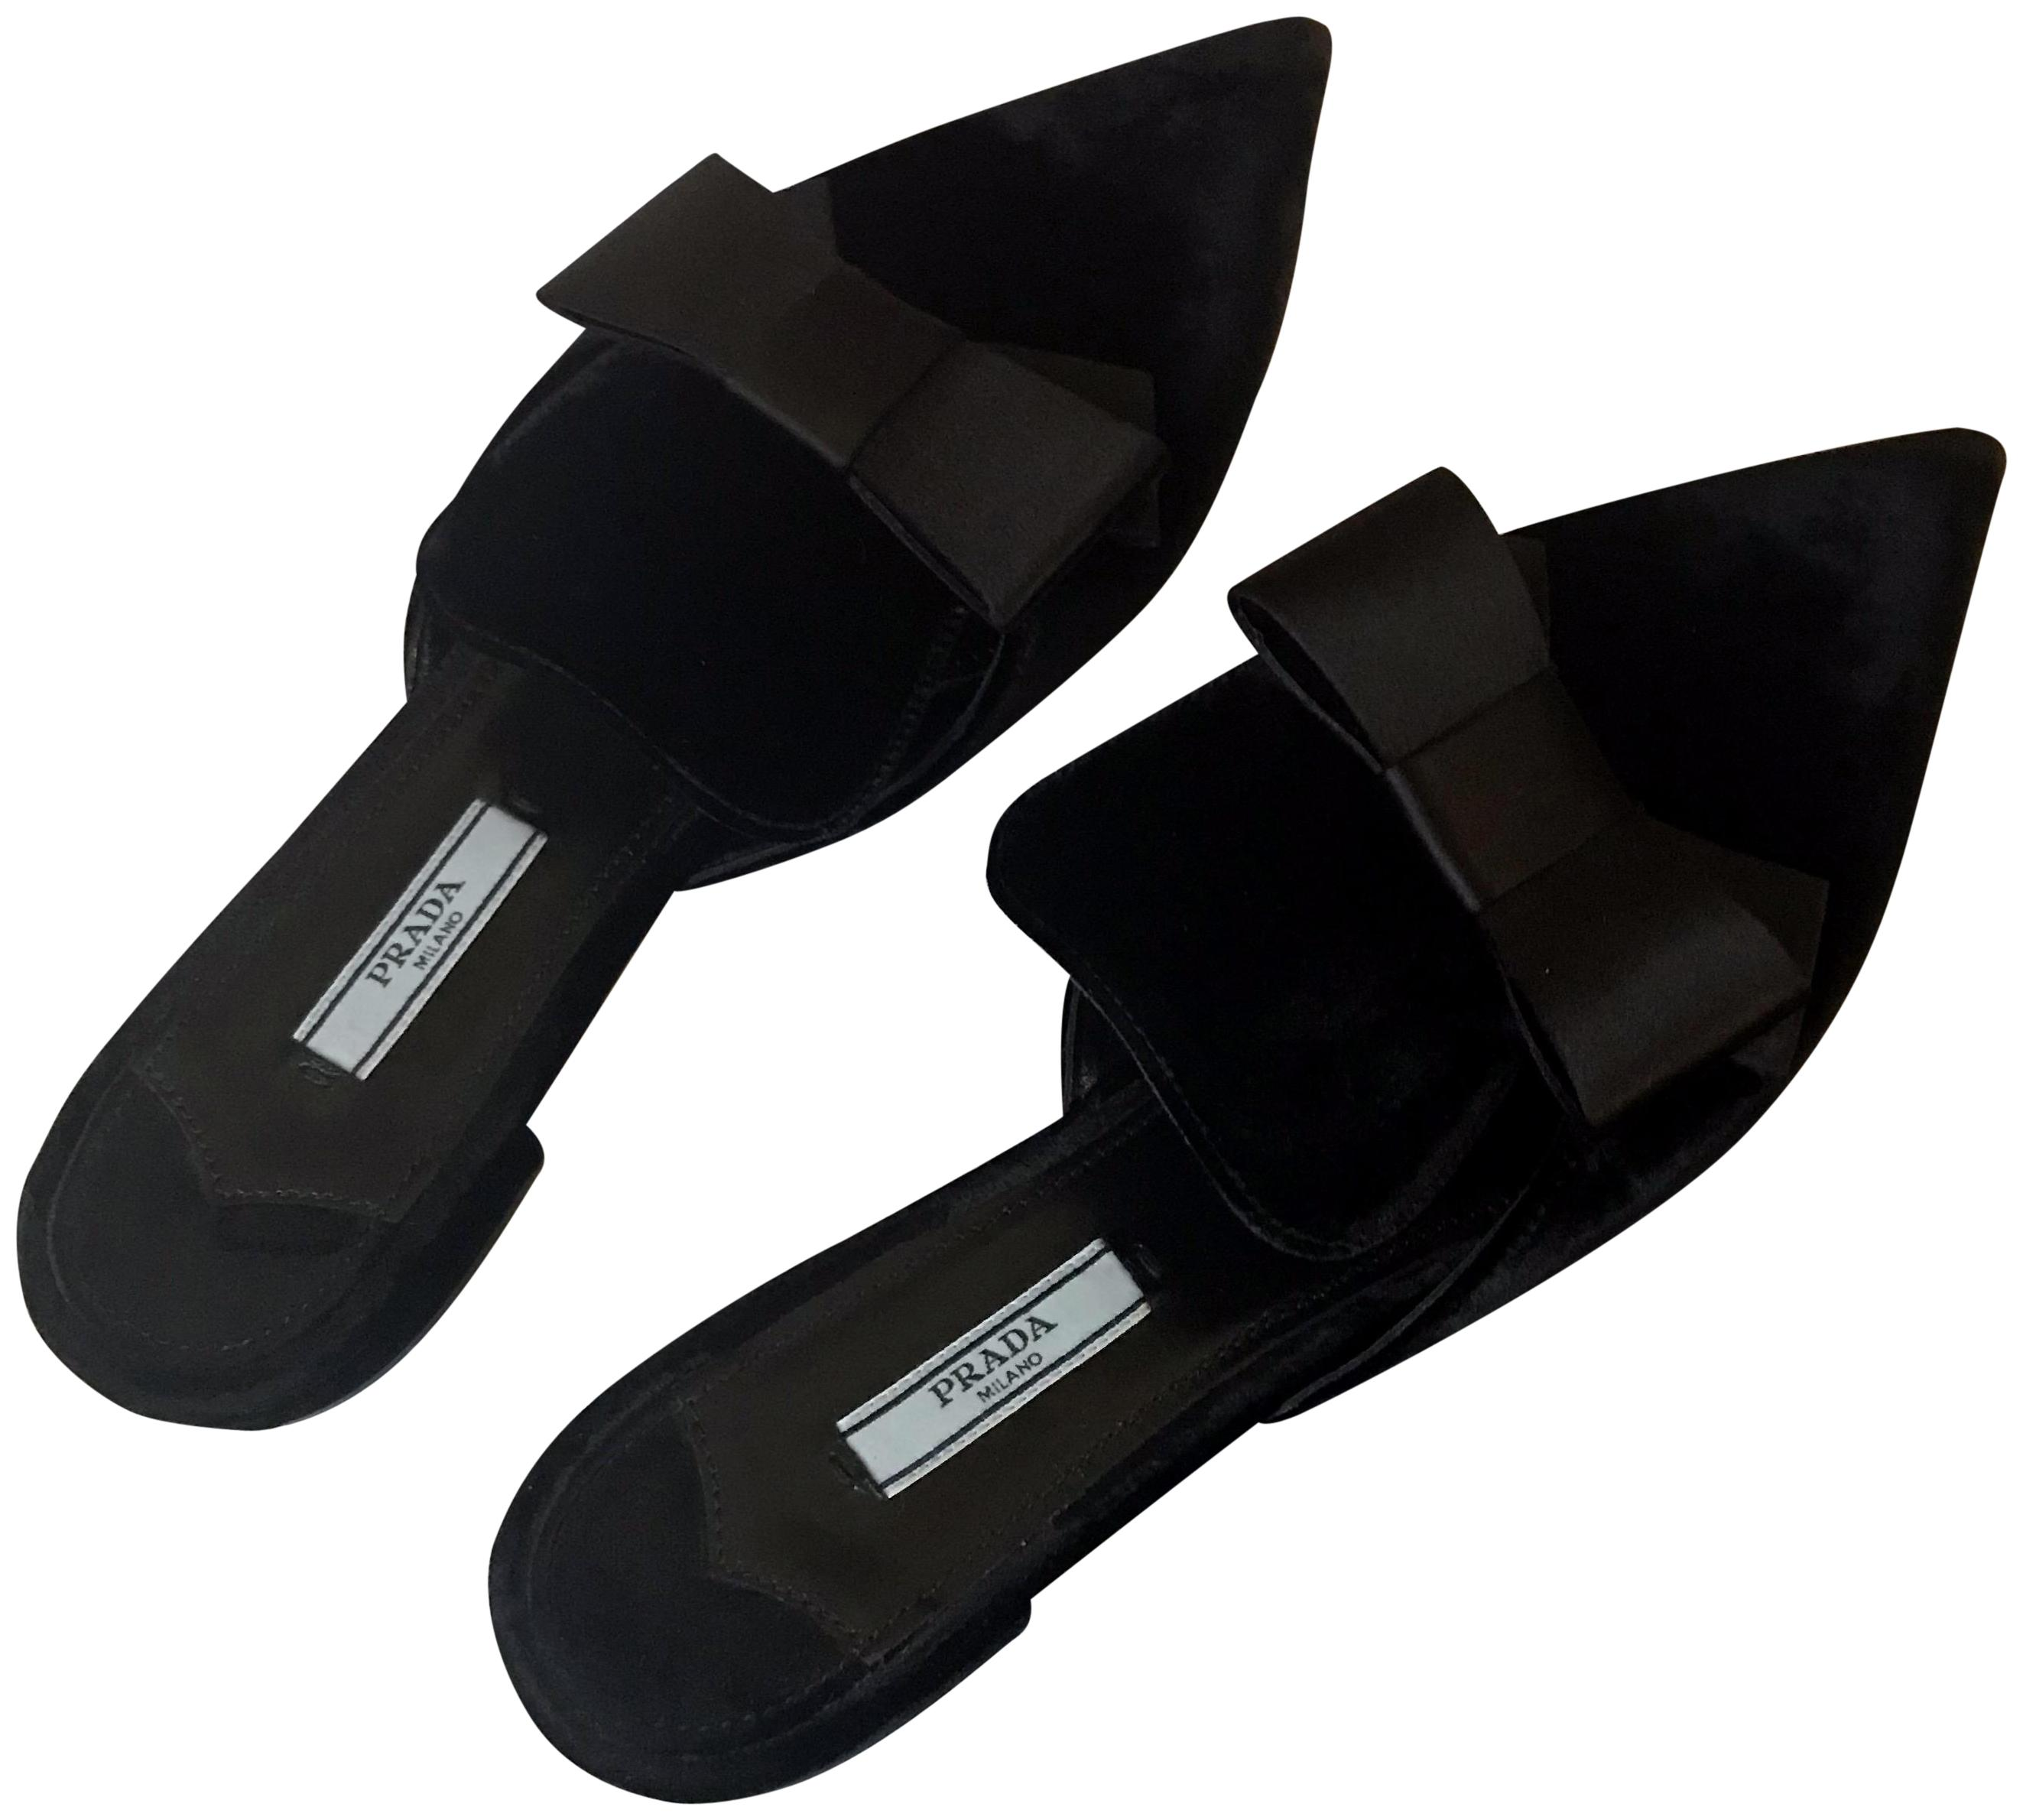 Prada Black Velvet Bow Pointed Mules/Slides Size EU 39 (Approx. US 9) Regular (M, B)